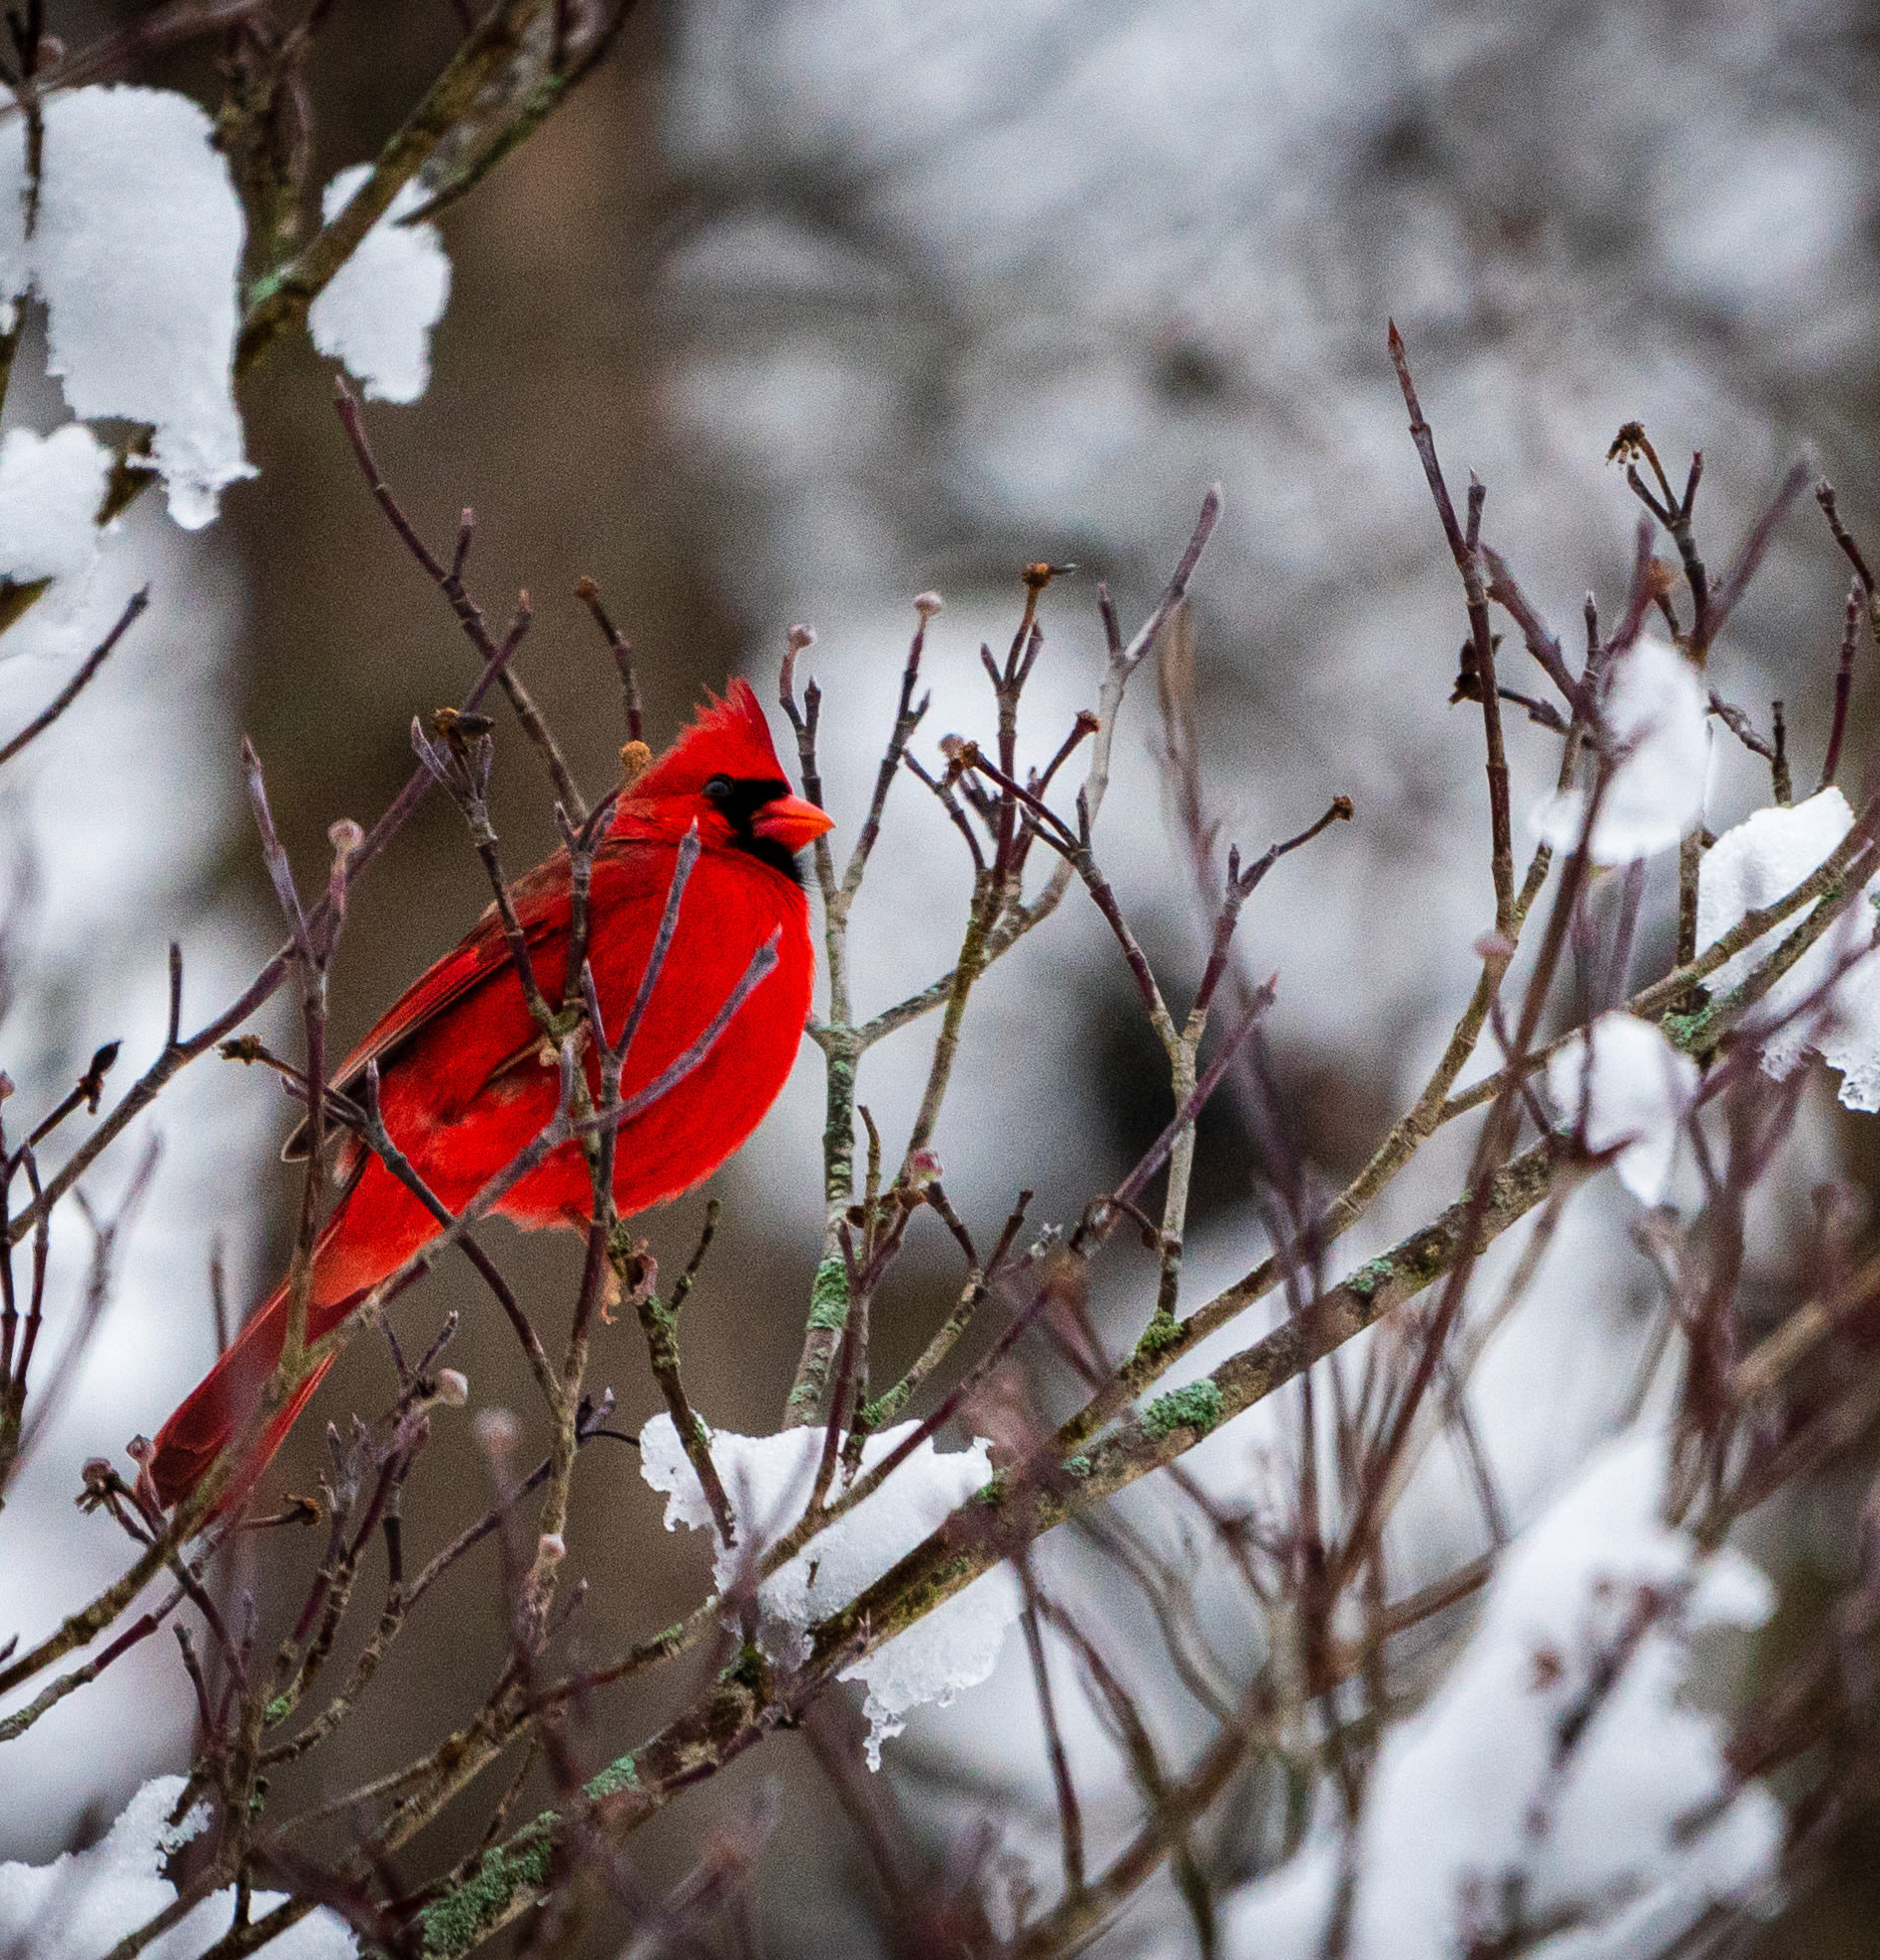 A male northern cardinal sits in a snow-covered tree.